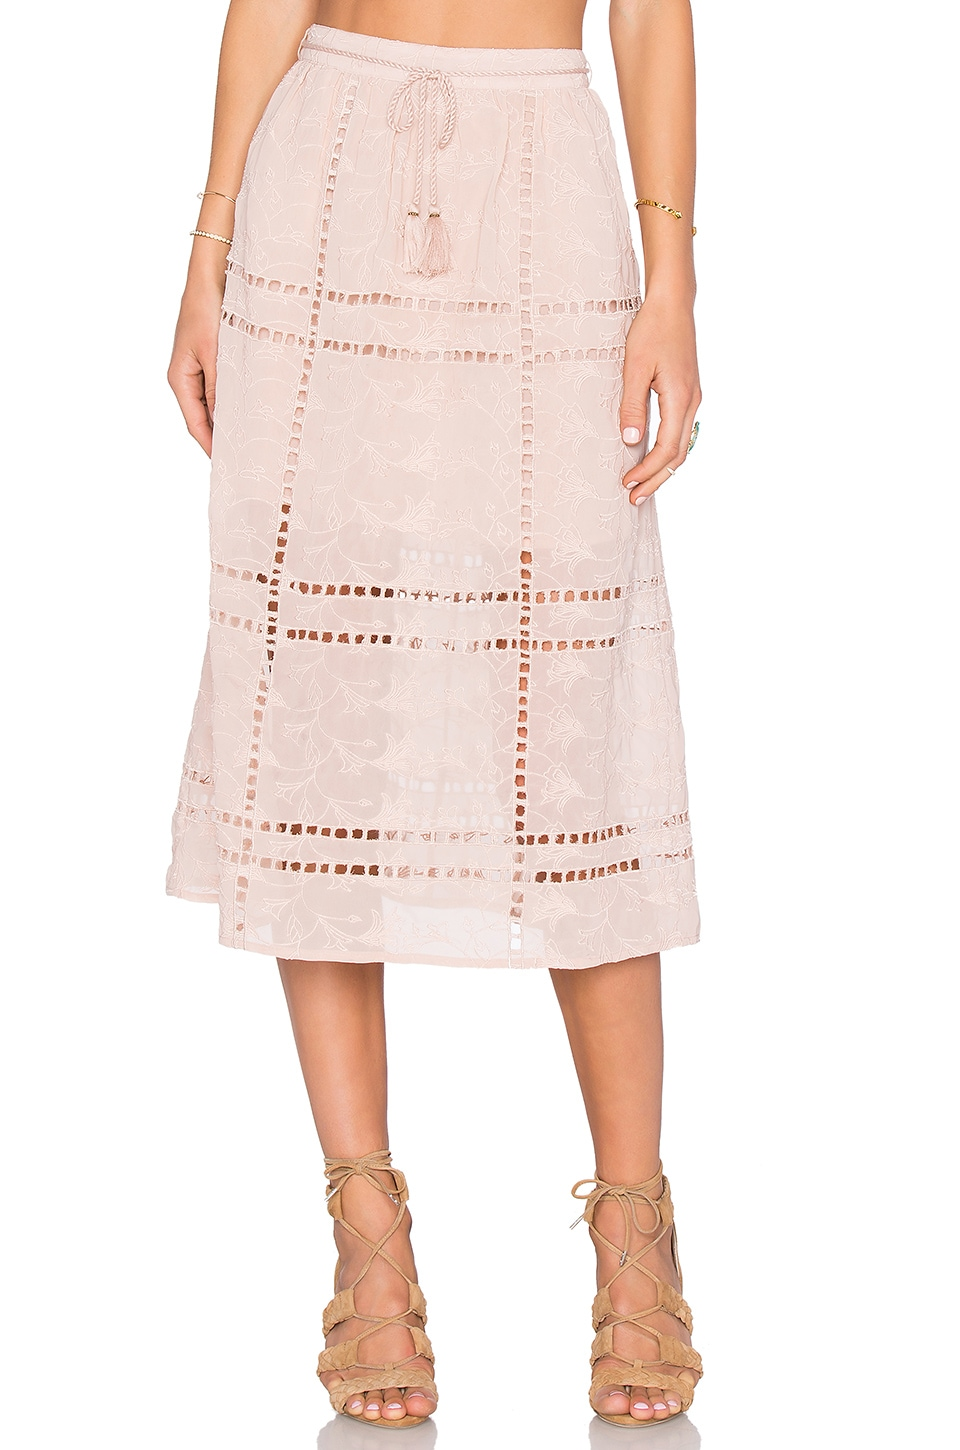 House of Harlow 1960 x REVOLVE Callie Midi Skirt in Taupe